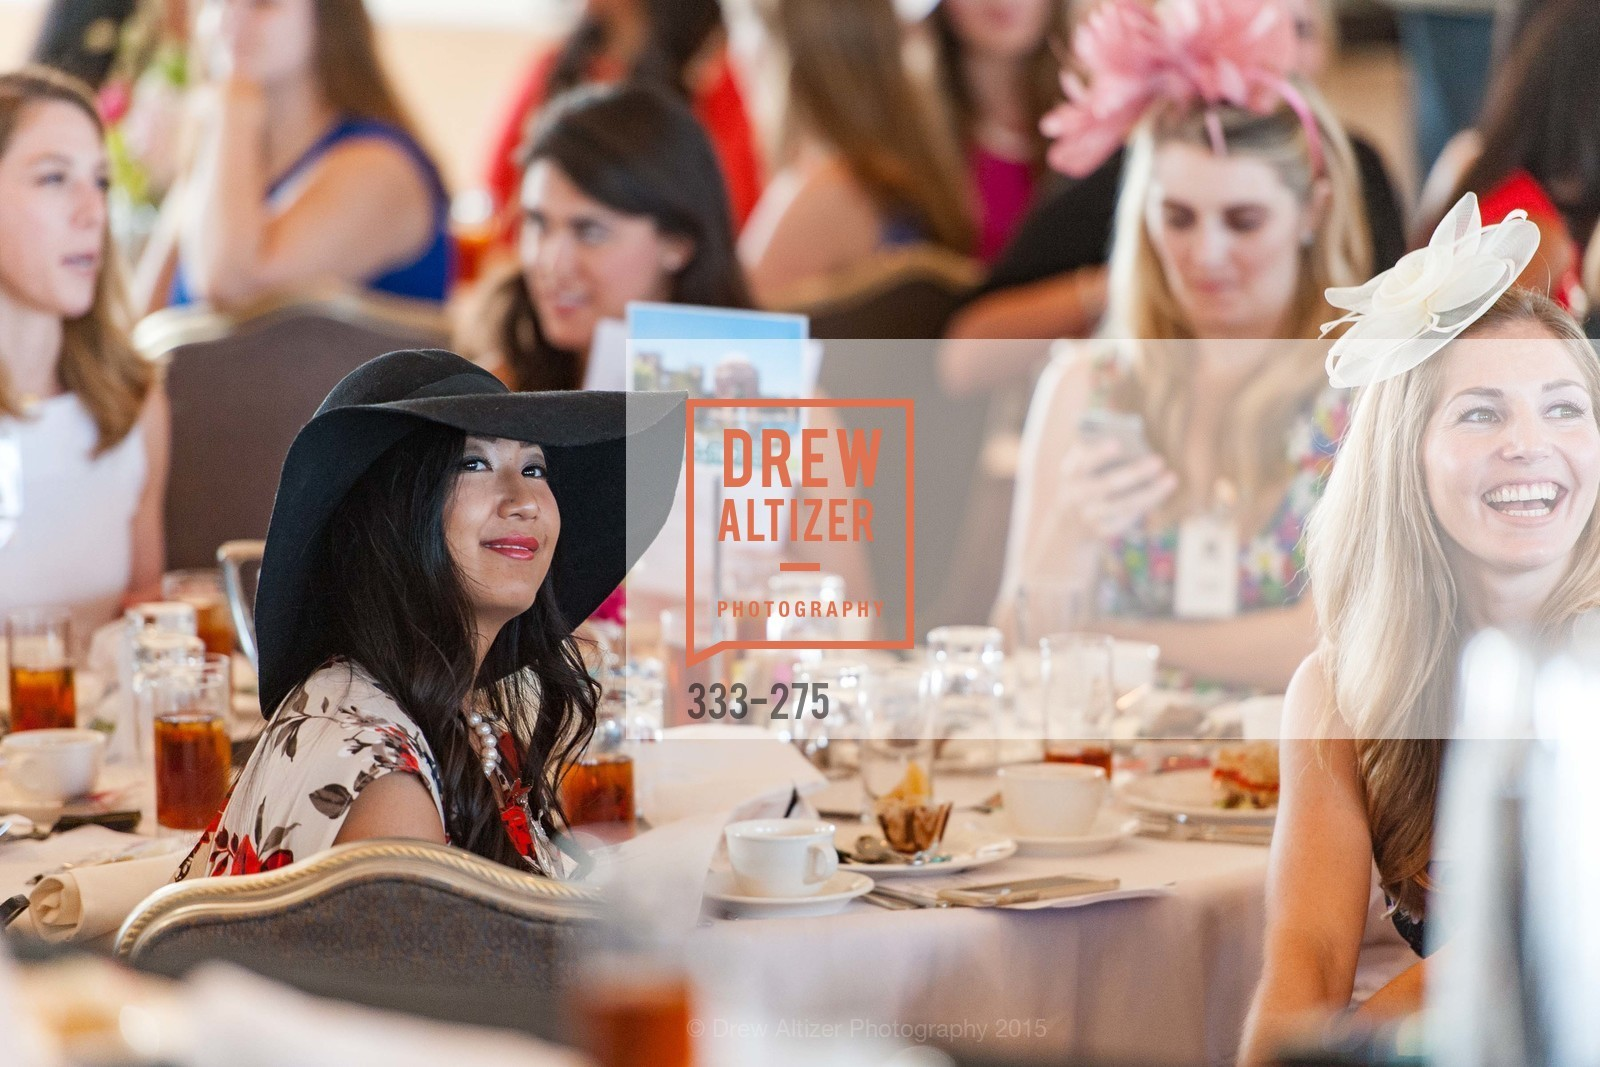 Top pics, Spinsters of San Francisco New Member Tea 2015, August 30th, 2015, Photo,Drew Altizer, Drew Altizer Photography, full-service agency, private events, San Francisco photographer, photographer california